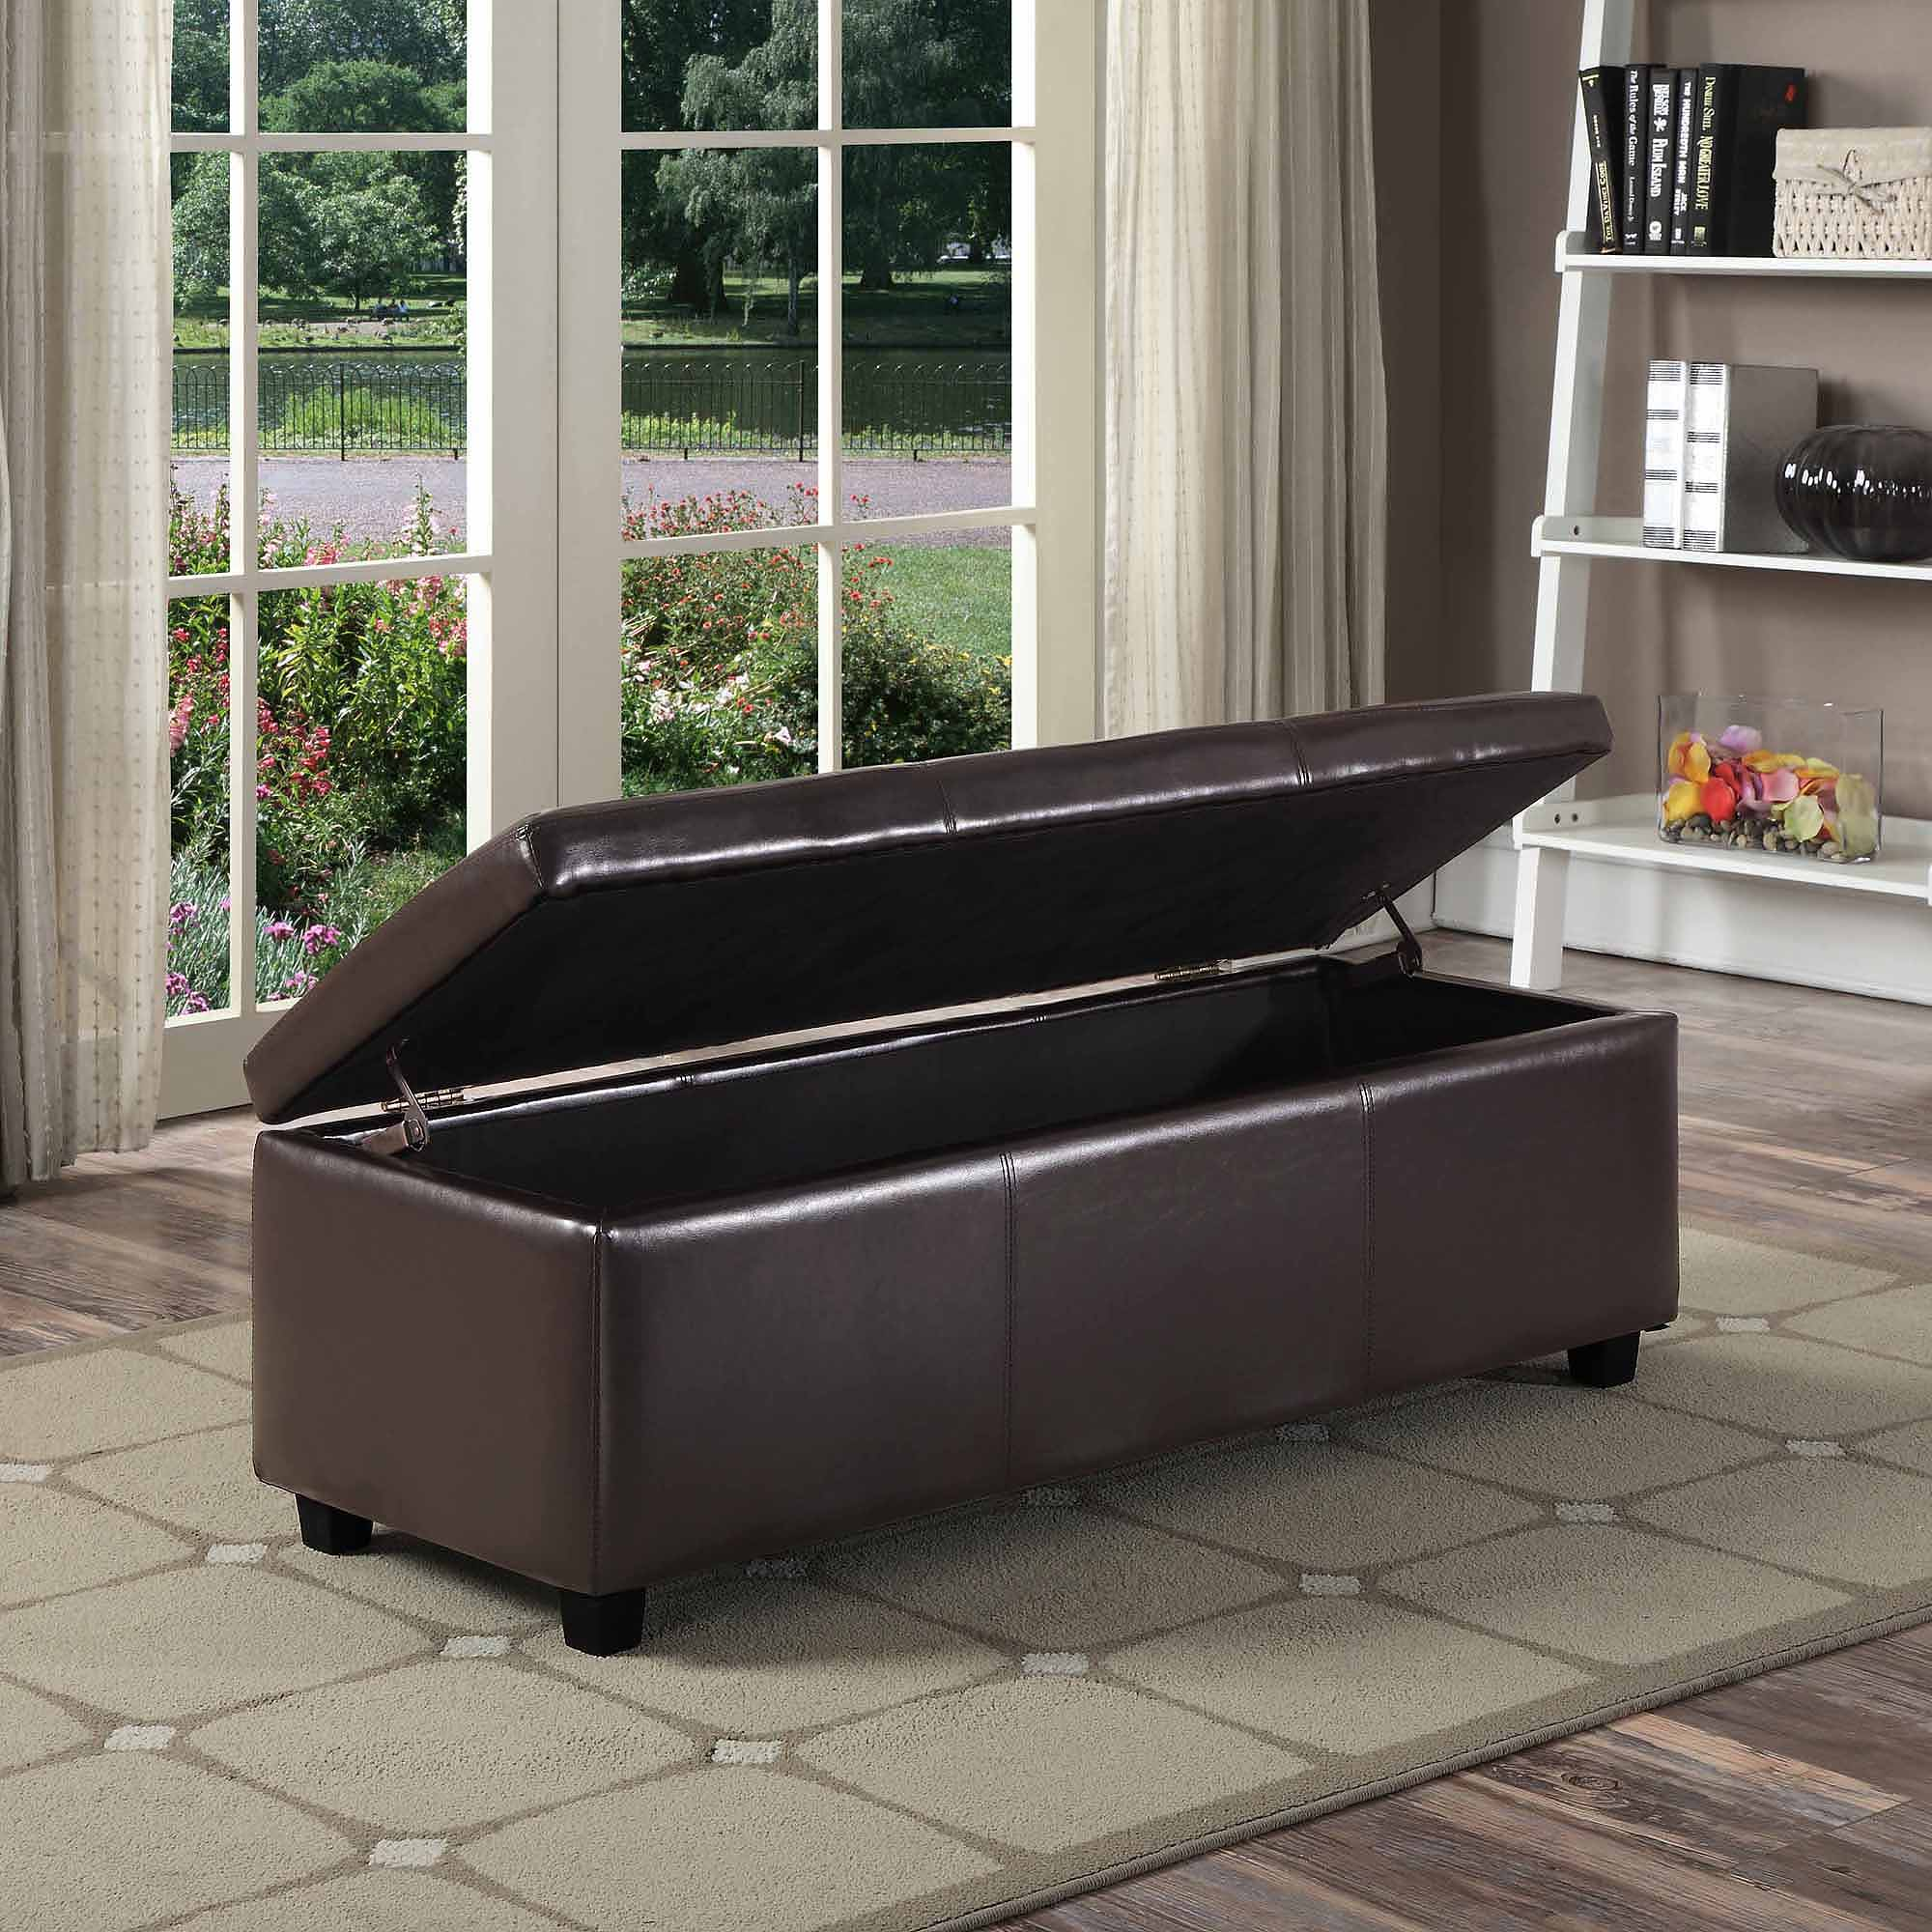 & Simpli Home Avalon Rectangular Faux Leather Storage Ottoman Bench | eBay